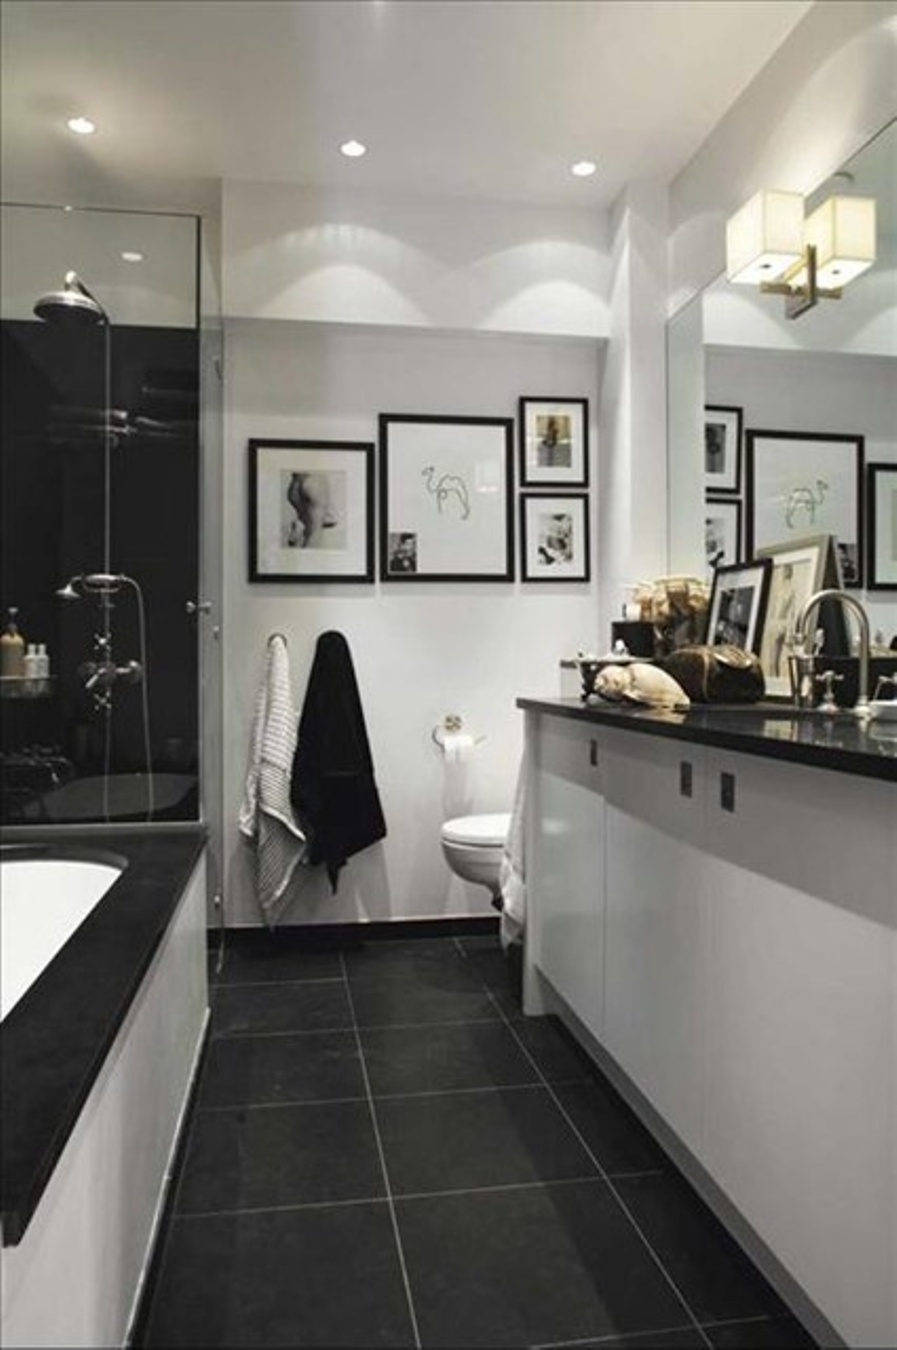 bathroom-with-dark-floor-tiles-and-white-walls-and-recessed-bathroom-lighting-fixtures-in-the-ceiling-with-black-and-white-sink-vanity